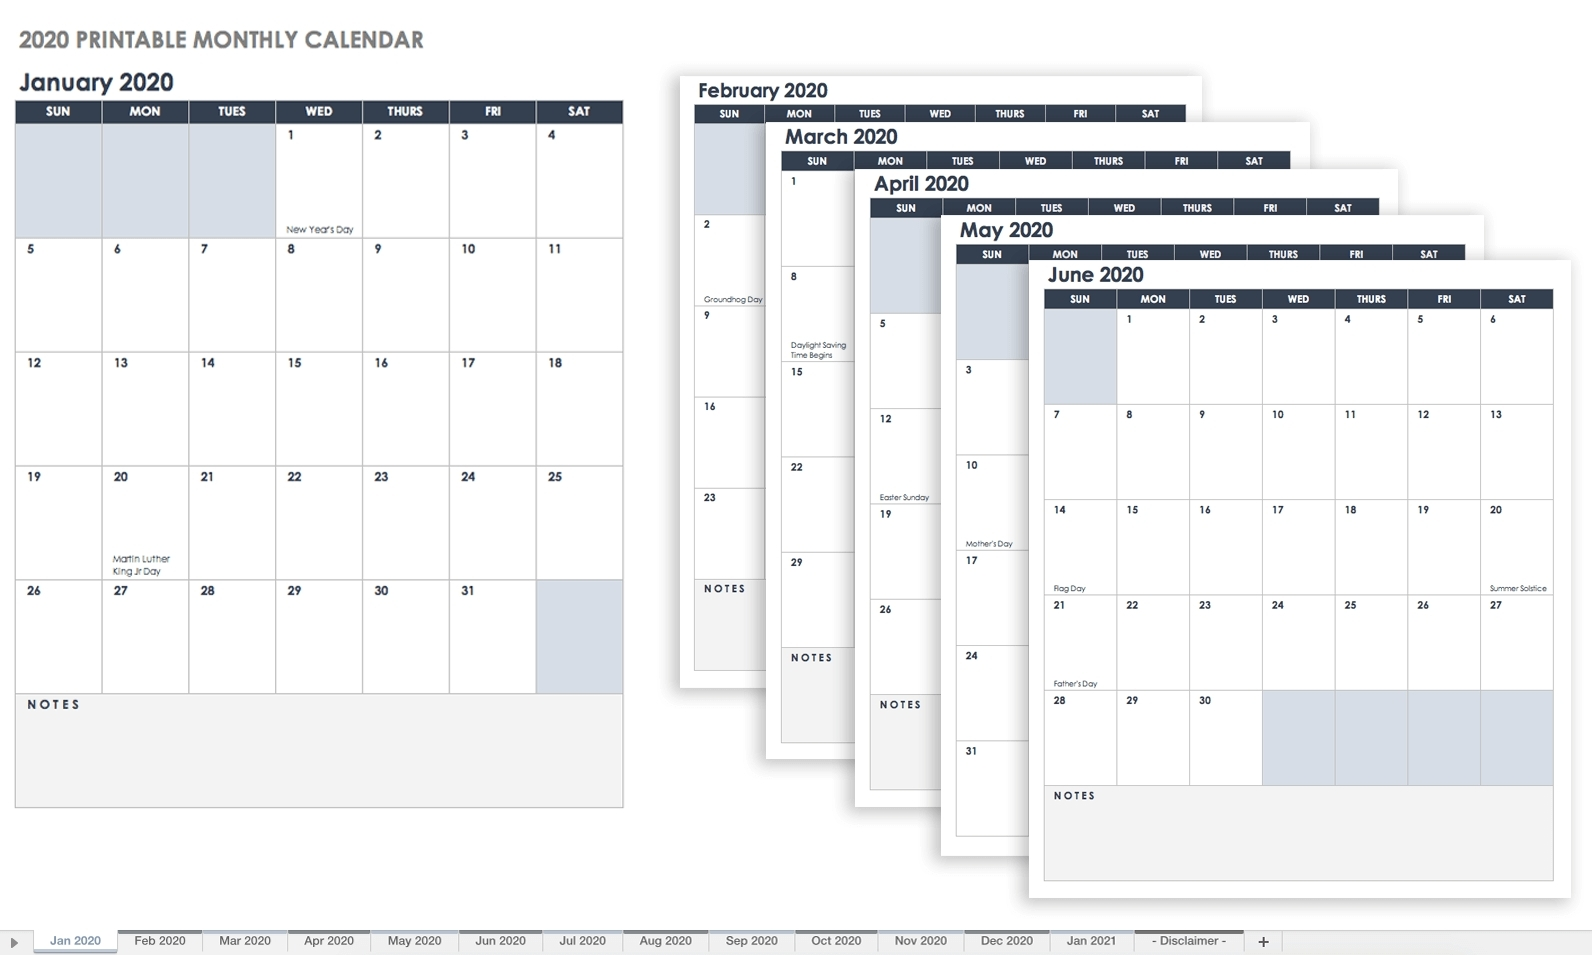 Sample Monthly Calendars To Printable With Notes - Calendar Inspiration Design